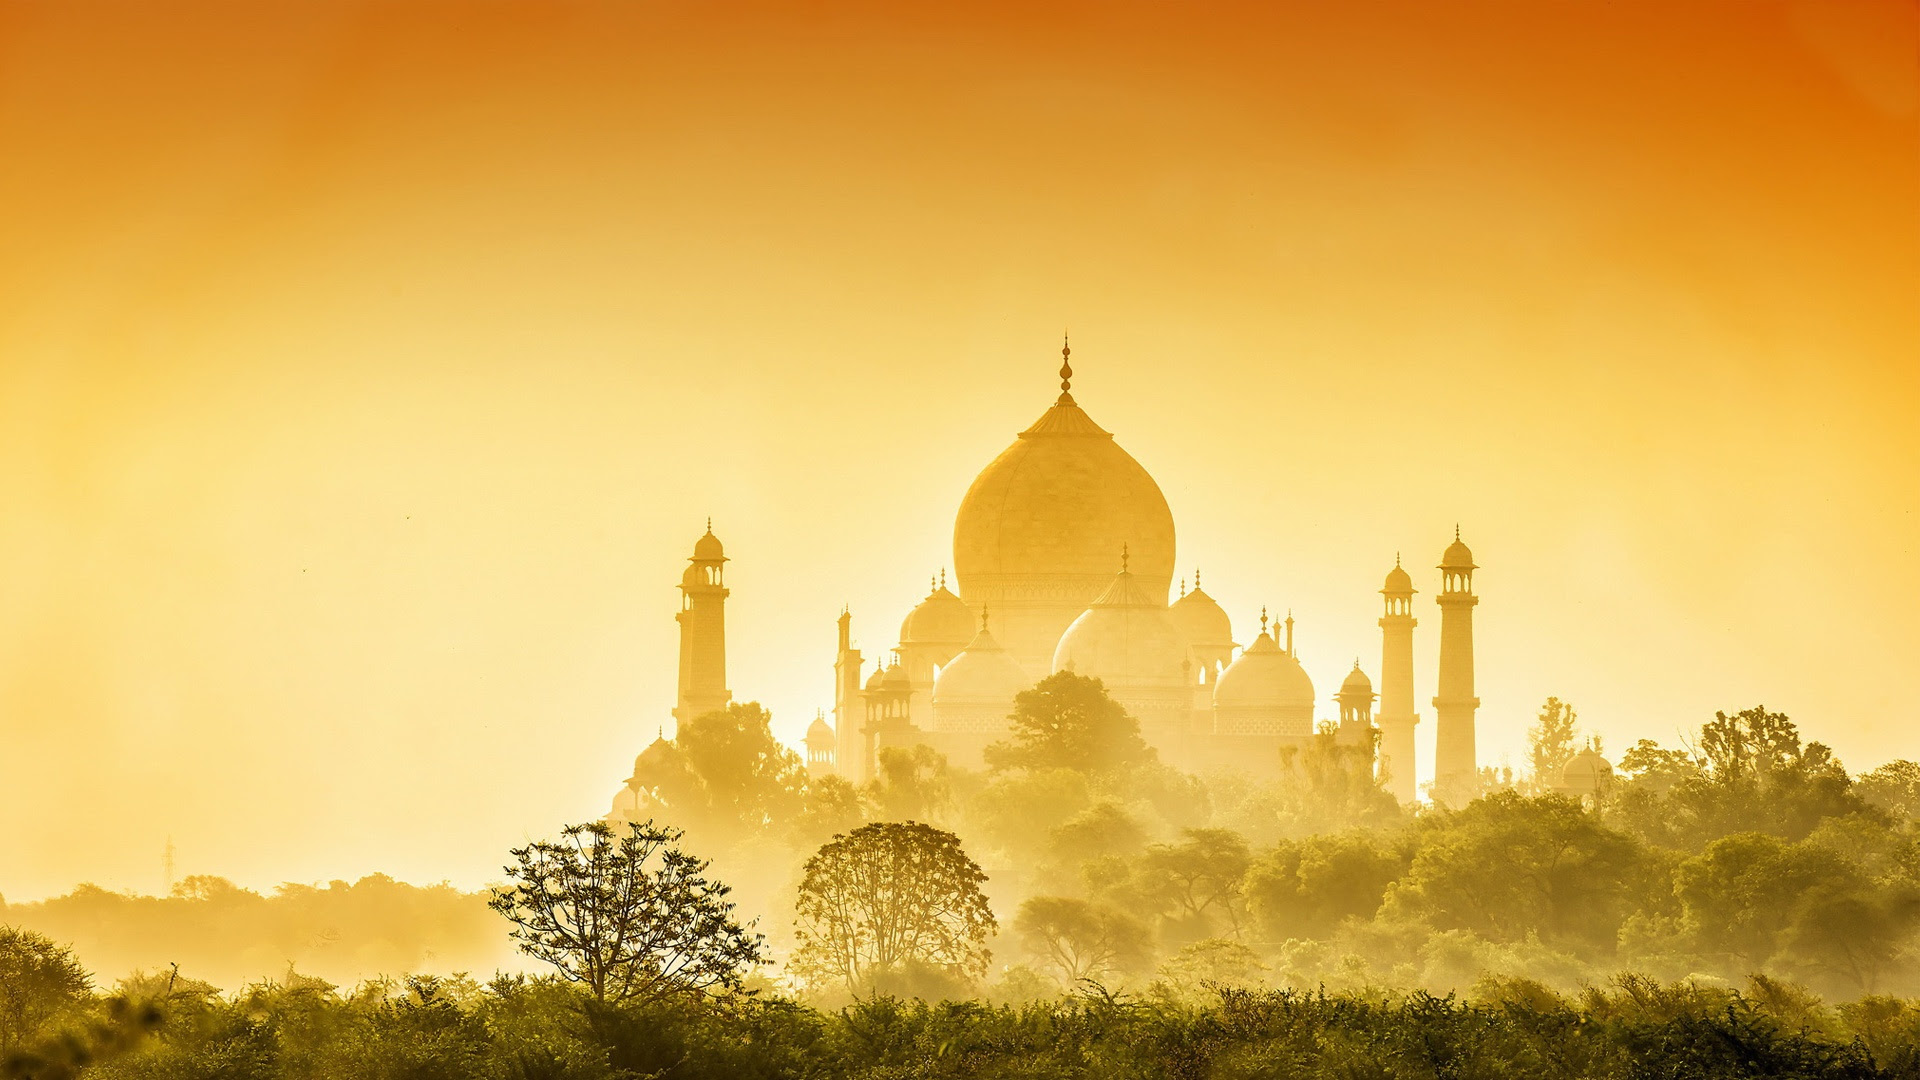 Wallpaper Beautiful Full Hd Taj Mahal